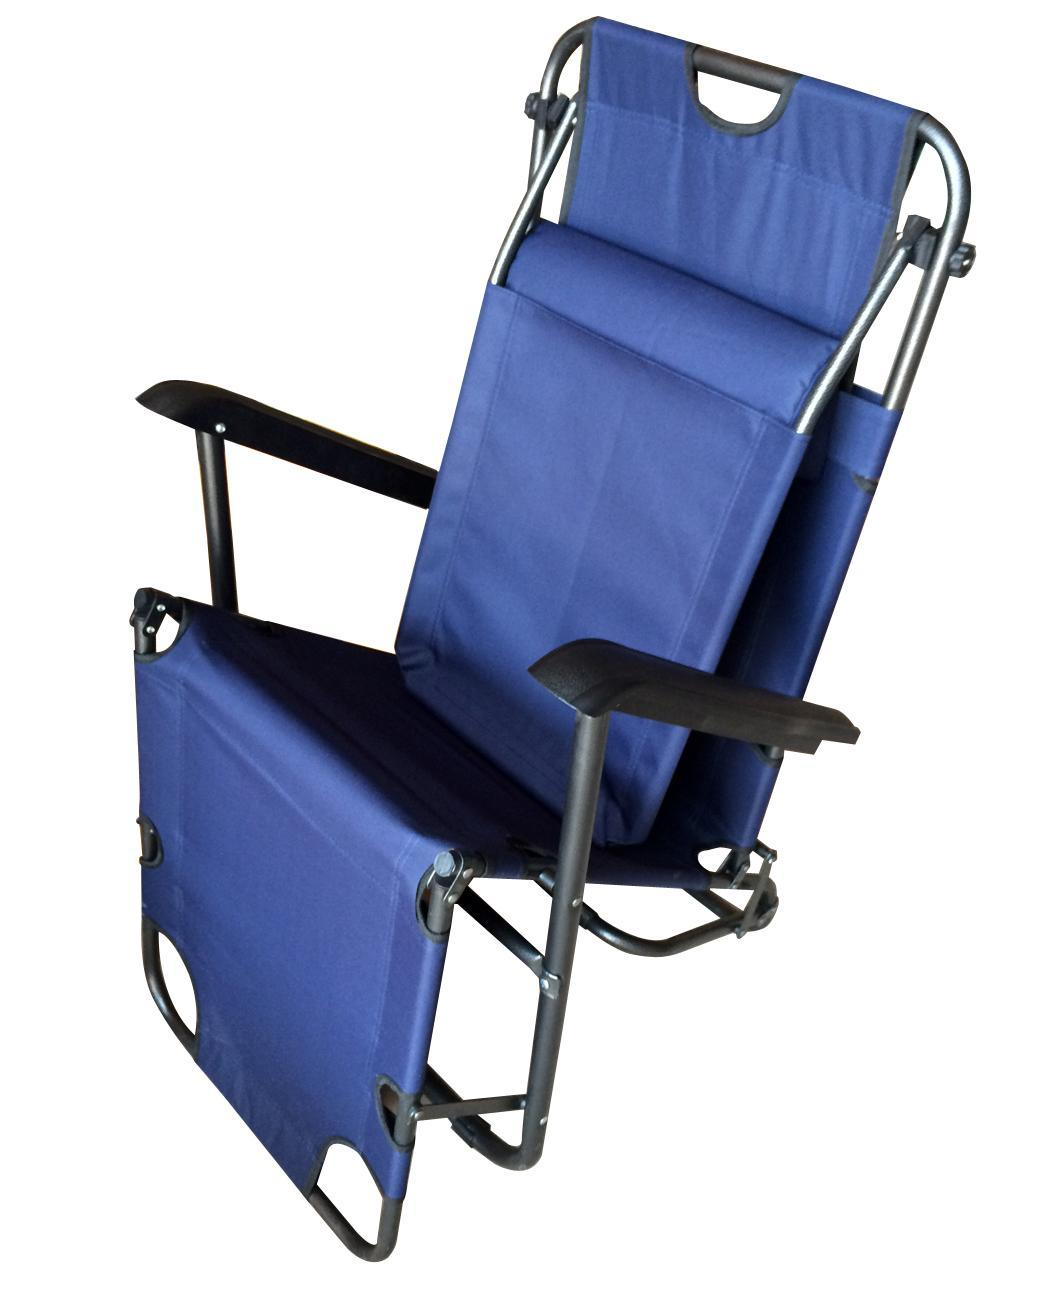 zero gravity outdoor chairs chair covers price new recliner 350lbs lounge